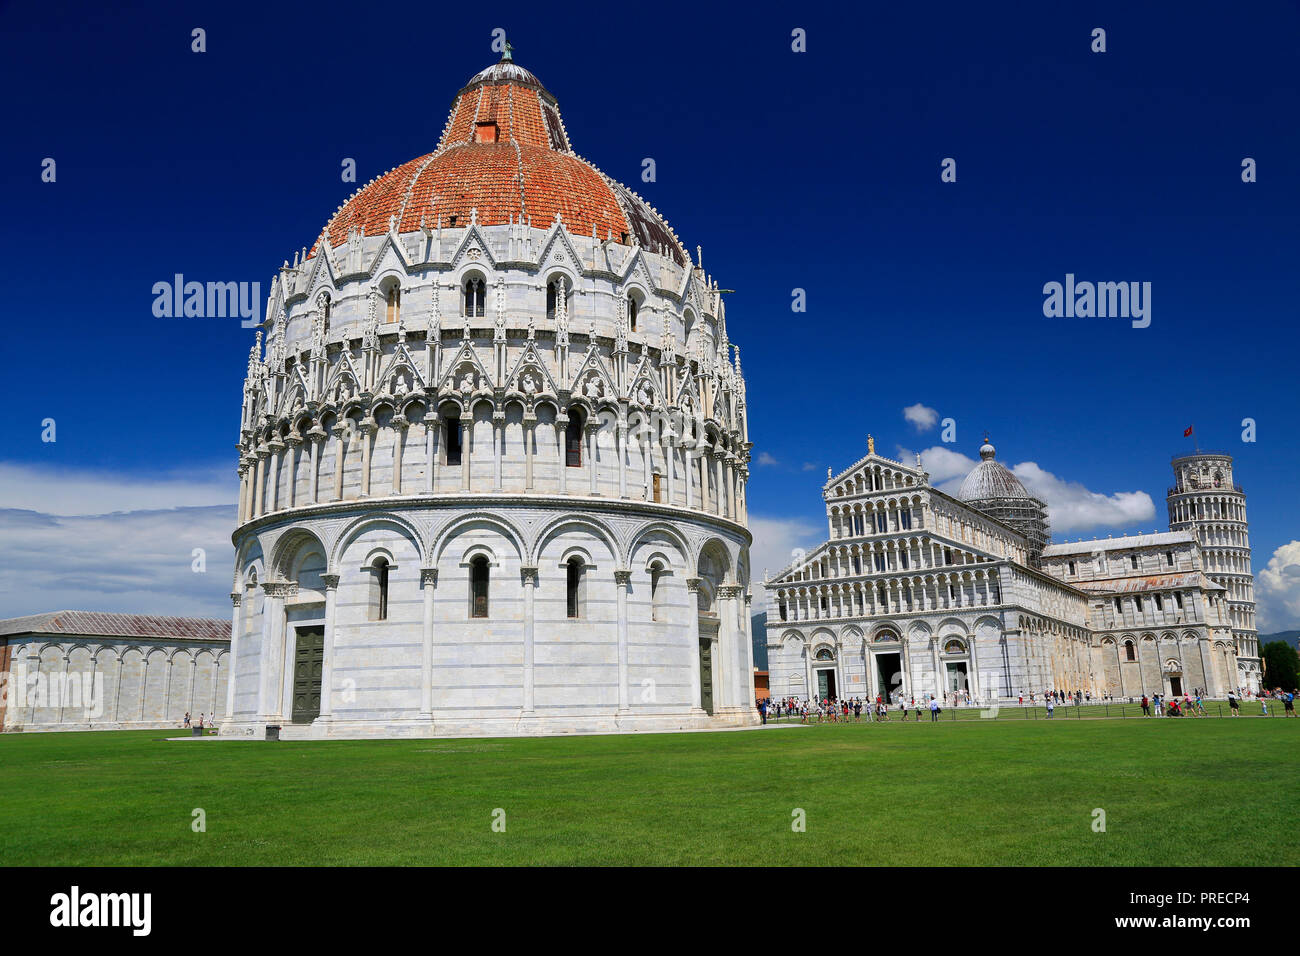 Piazza del Duomo in Pisa, Baptistery and Basilica, Italy - Stock Image